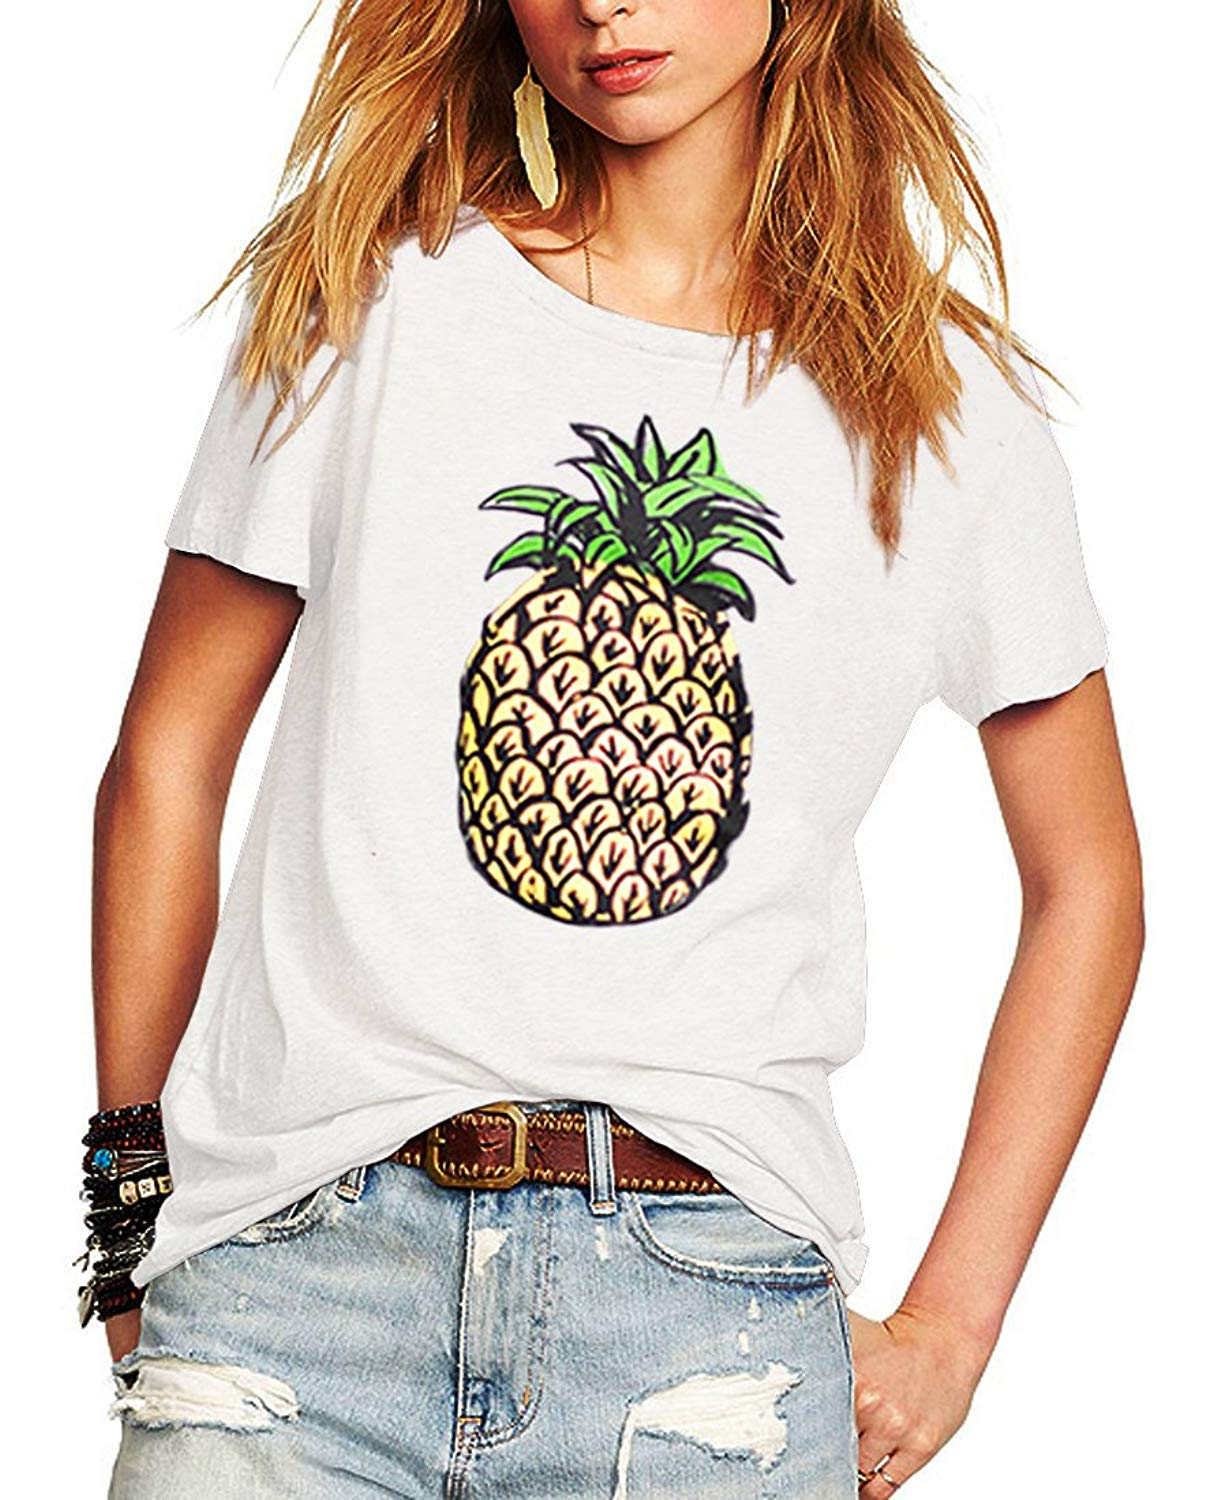 Cheap Cute Shirts For Juniors, find Cute Shirts For Juniors